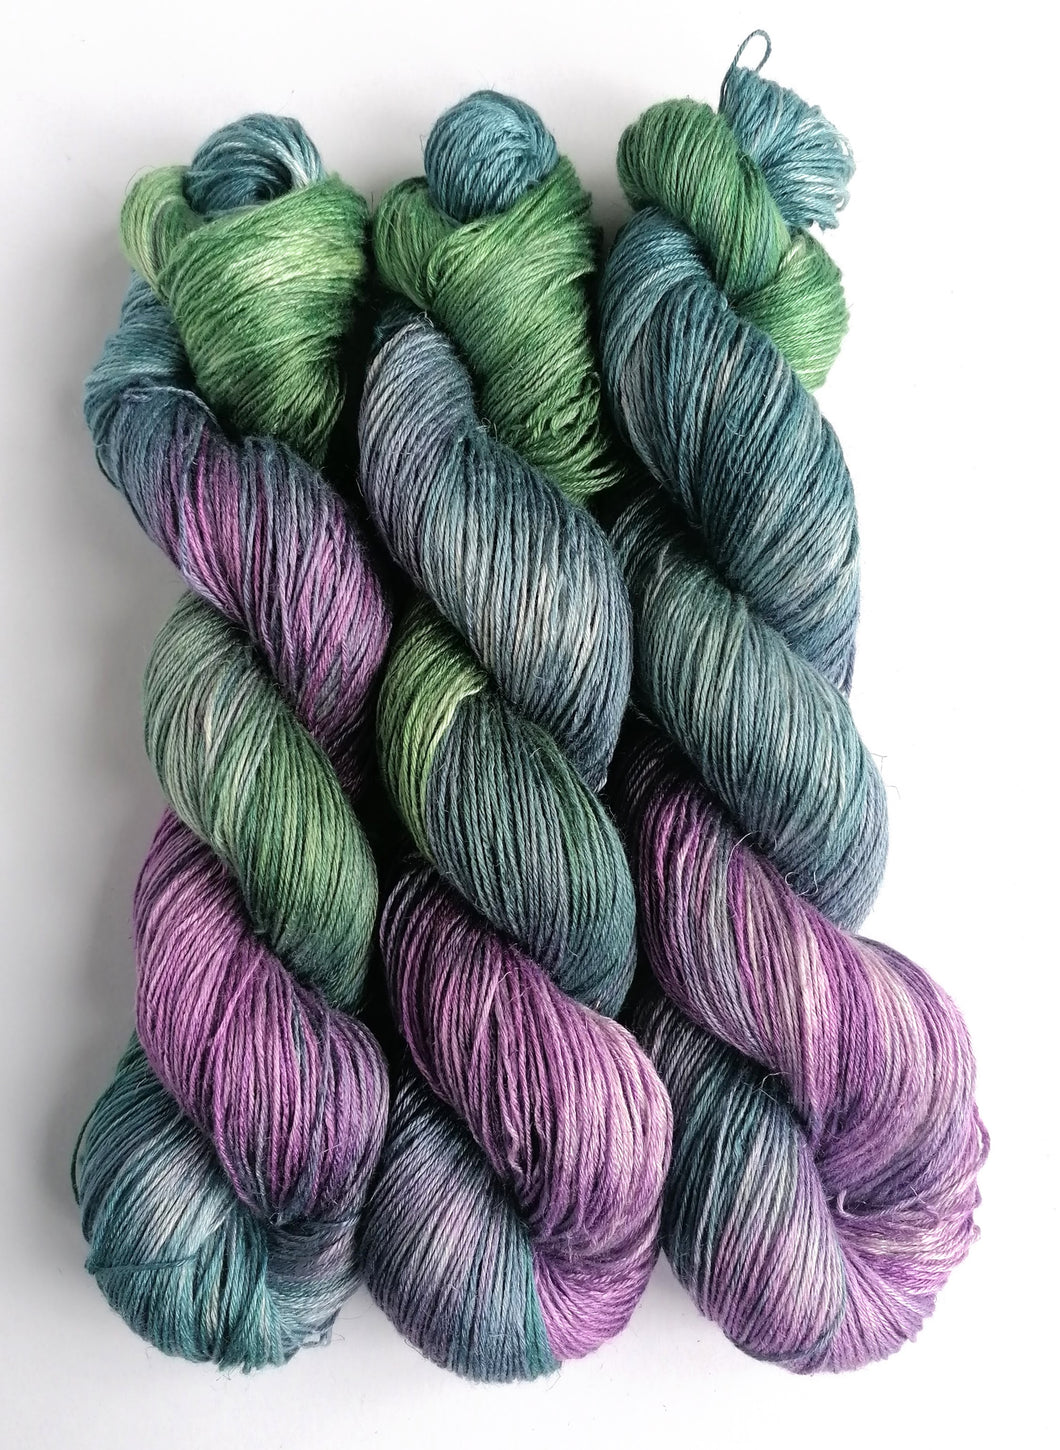 Teal, green and lilac, on bamboo/linen 4ply